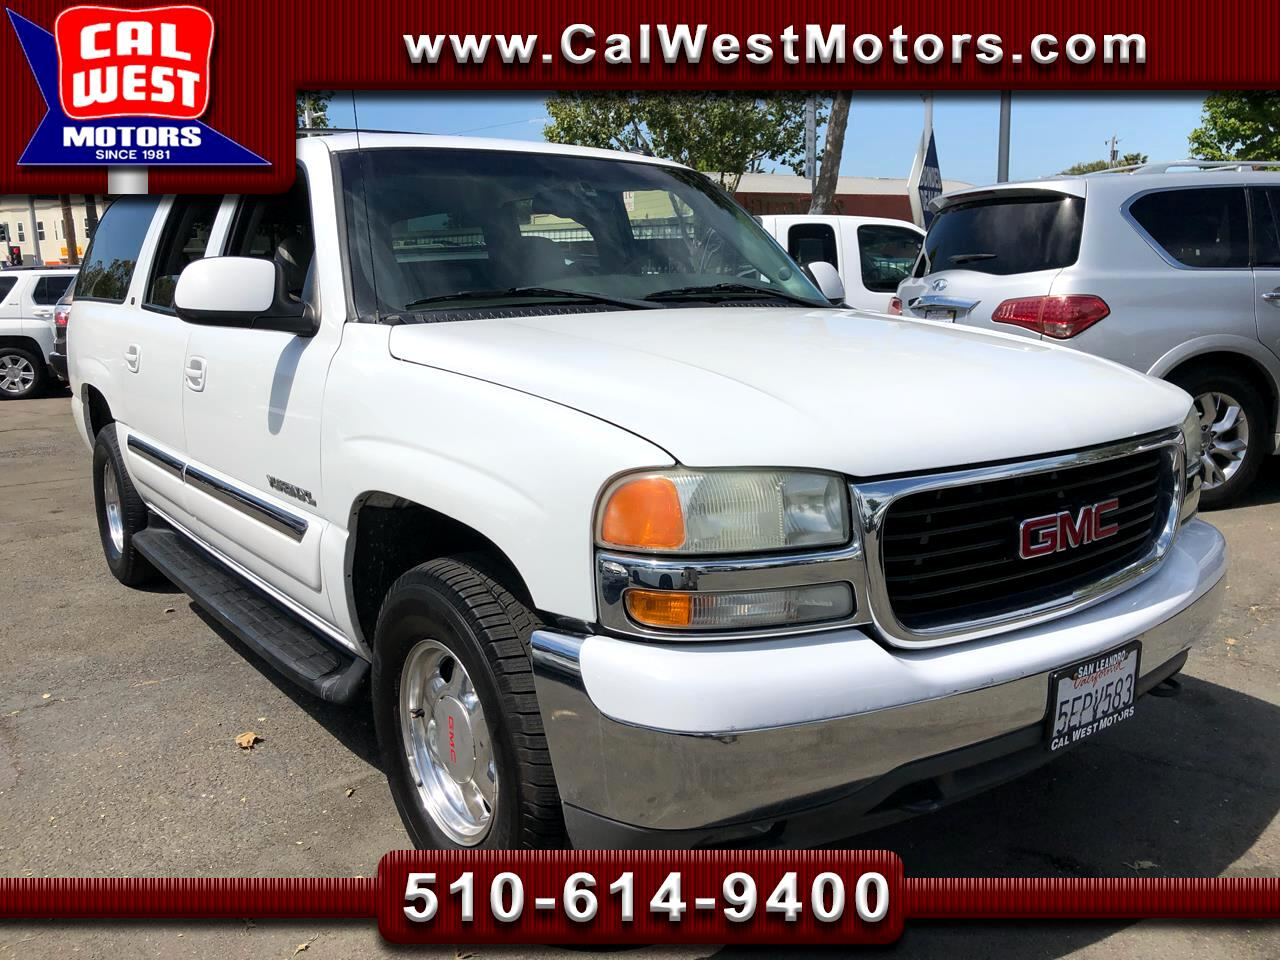 2003 GMC Yukon XL 4X4 SLT 3Row Leathr BOSE 1Owner ExClean GreatMtnce